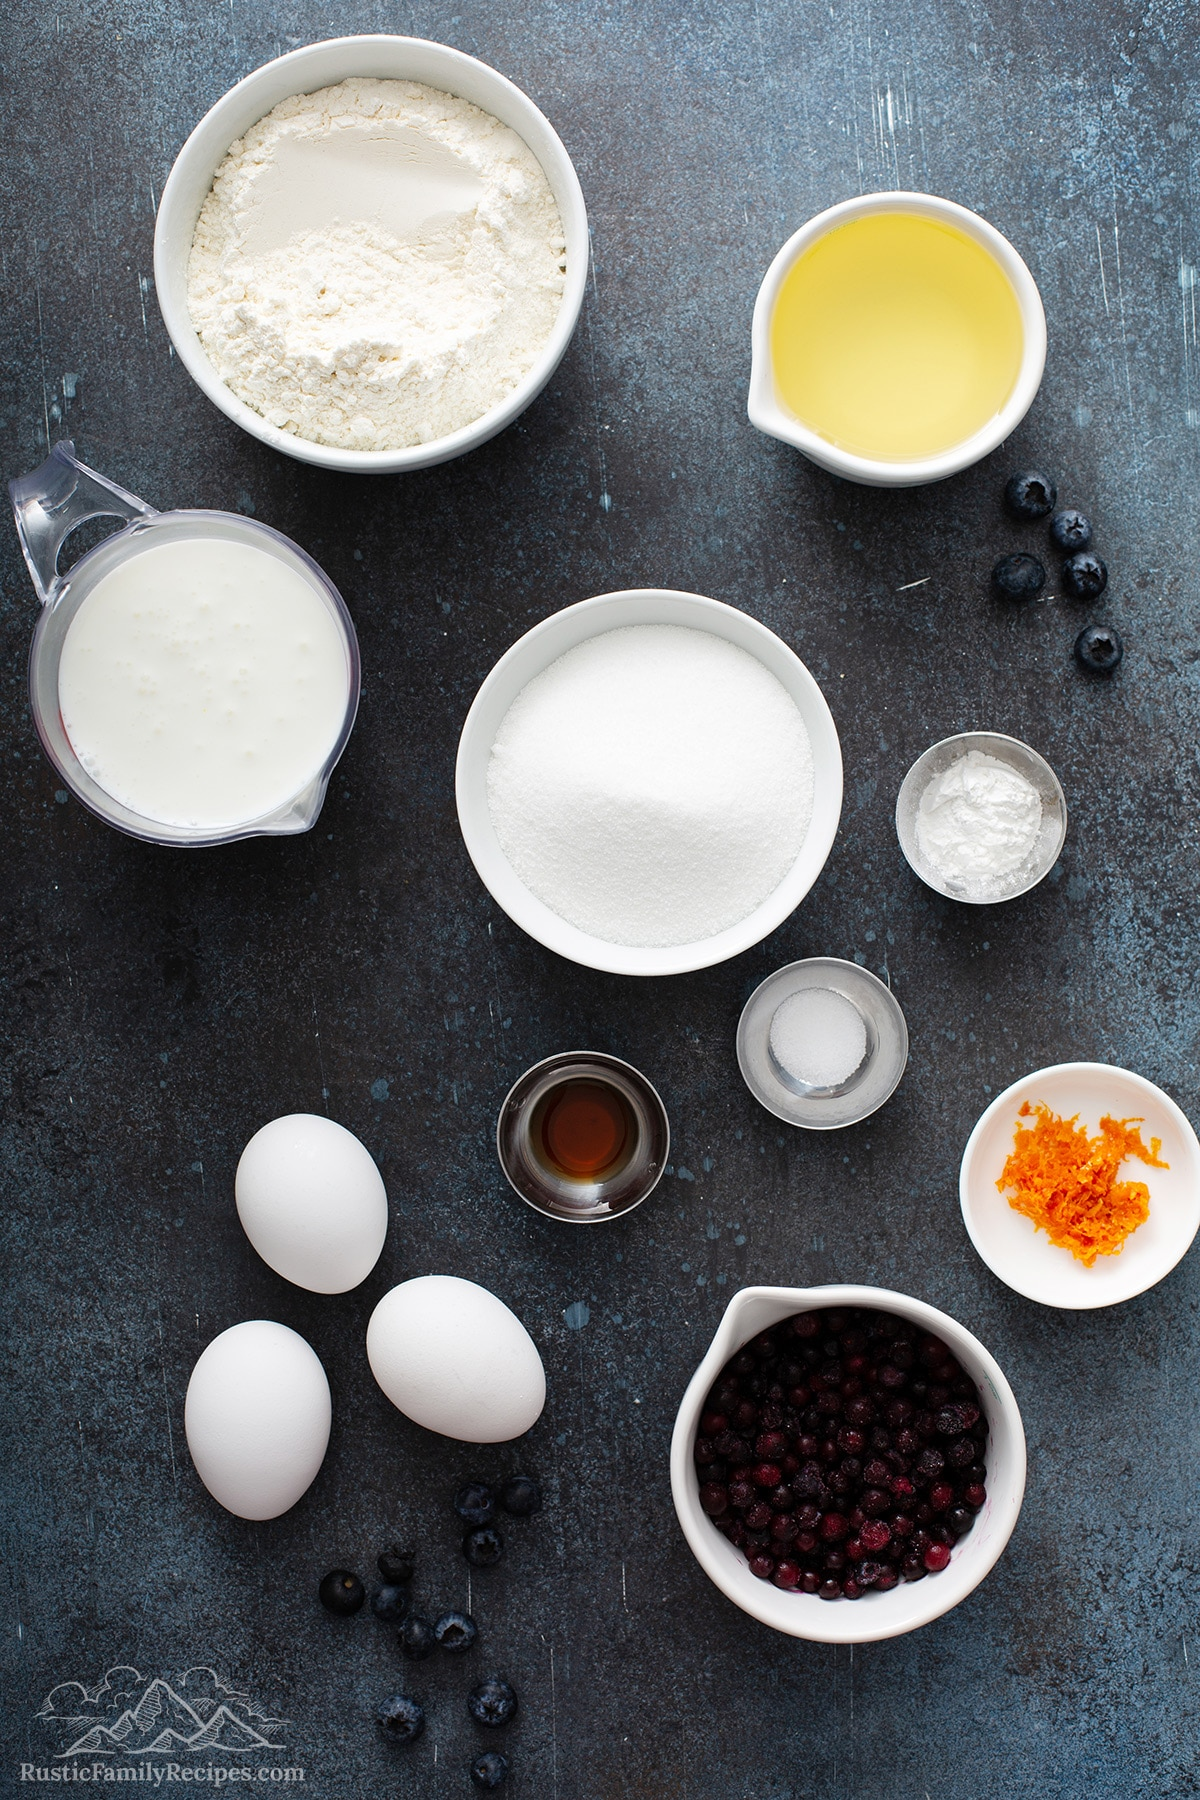 Bowls on a grey background with coffee cake ingredients.